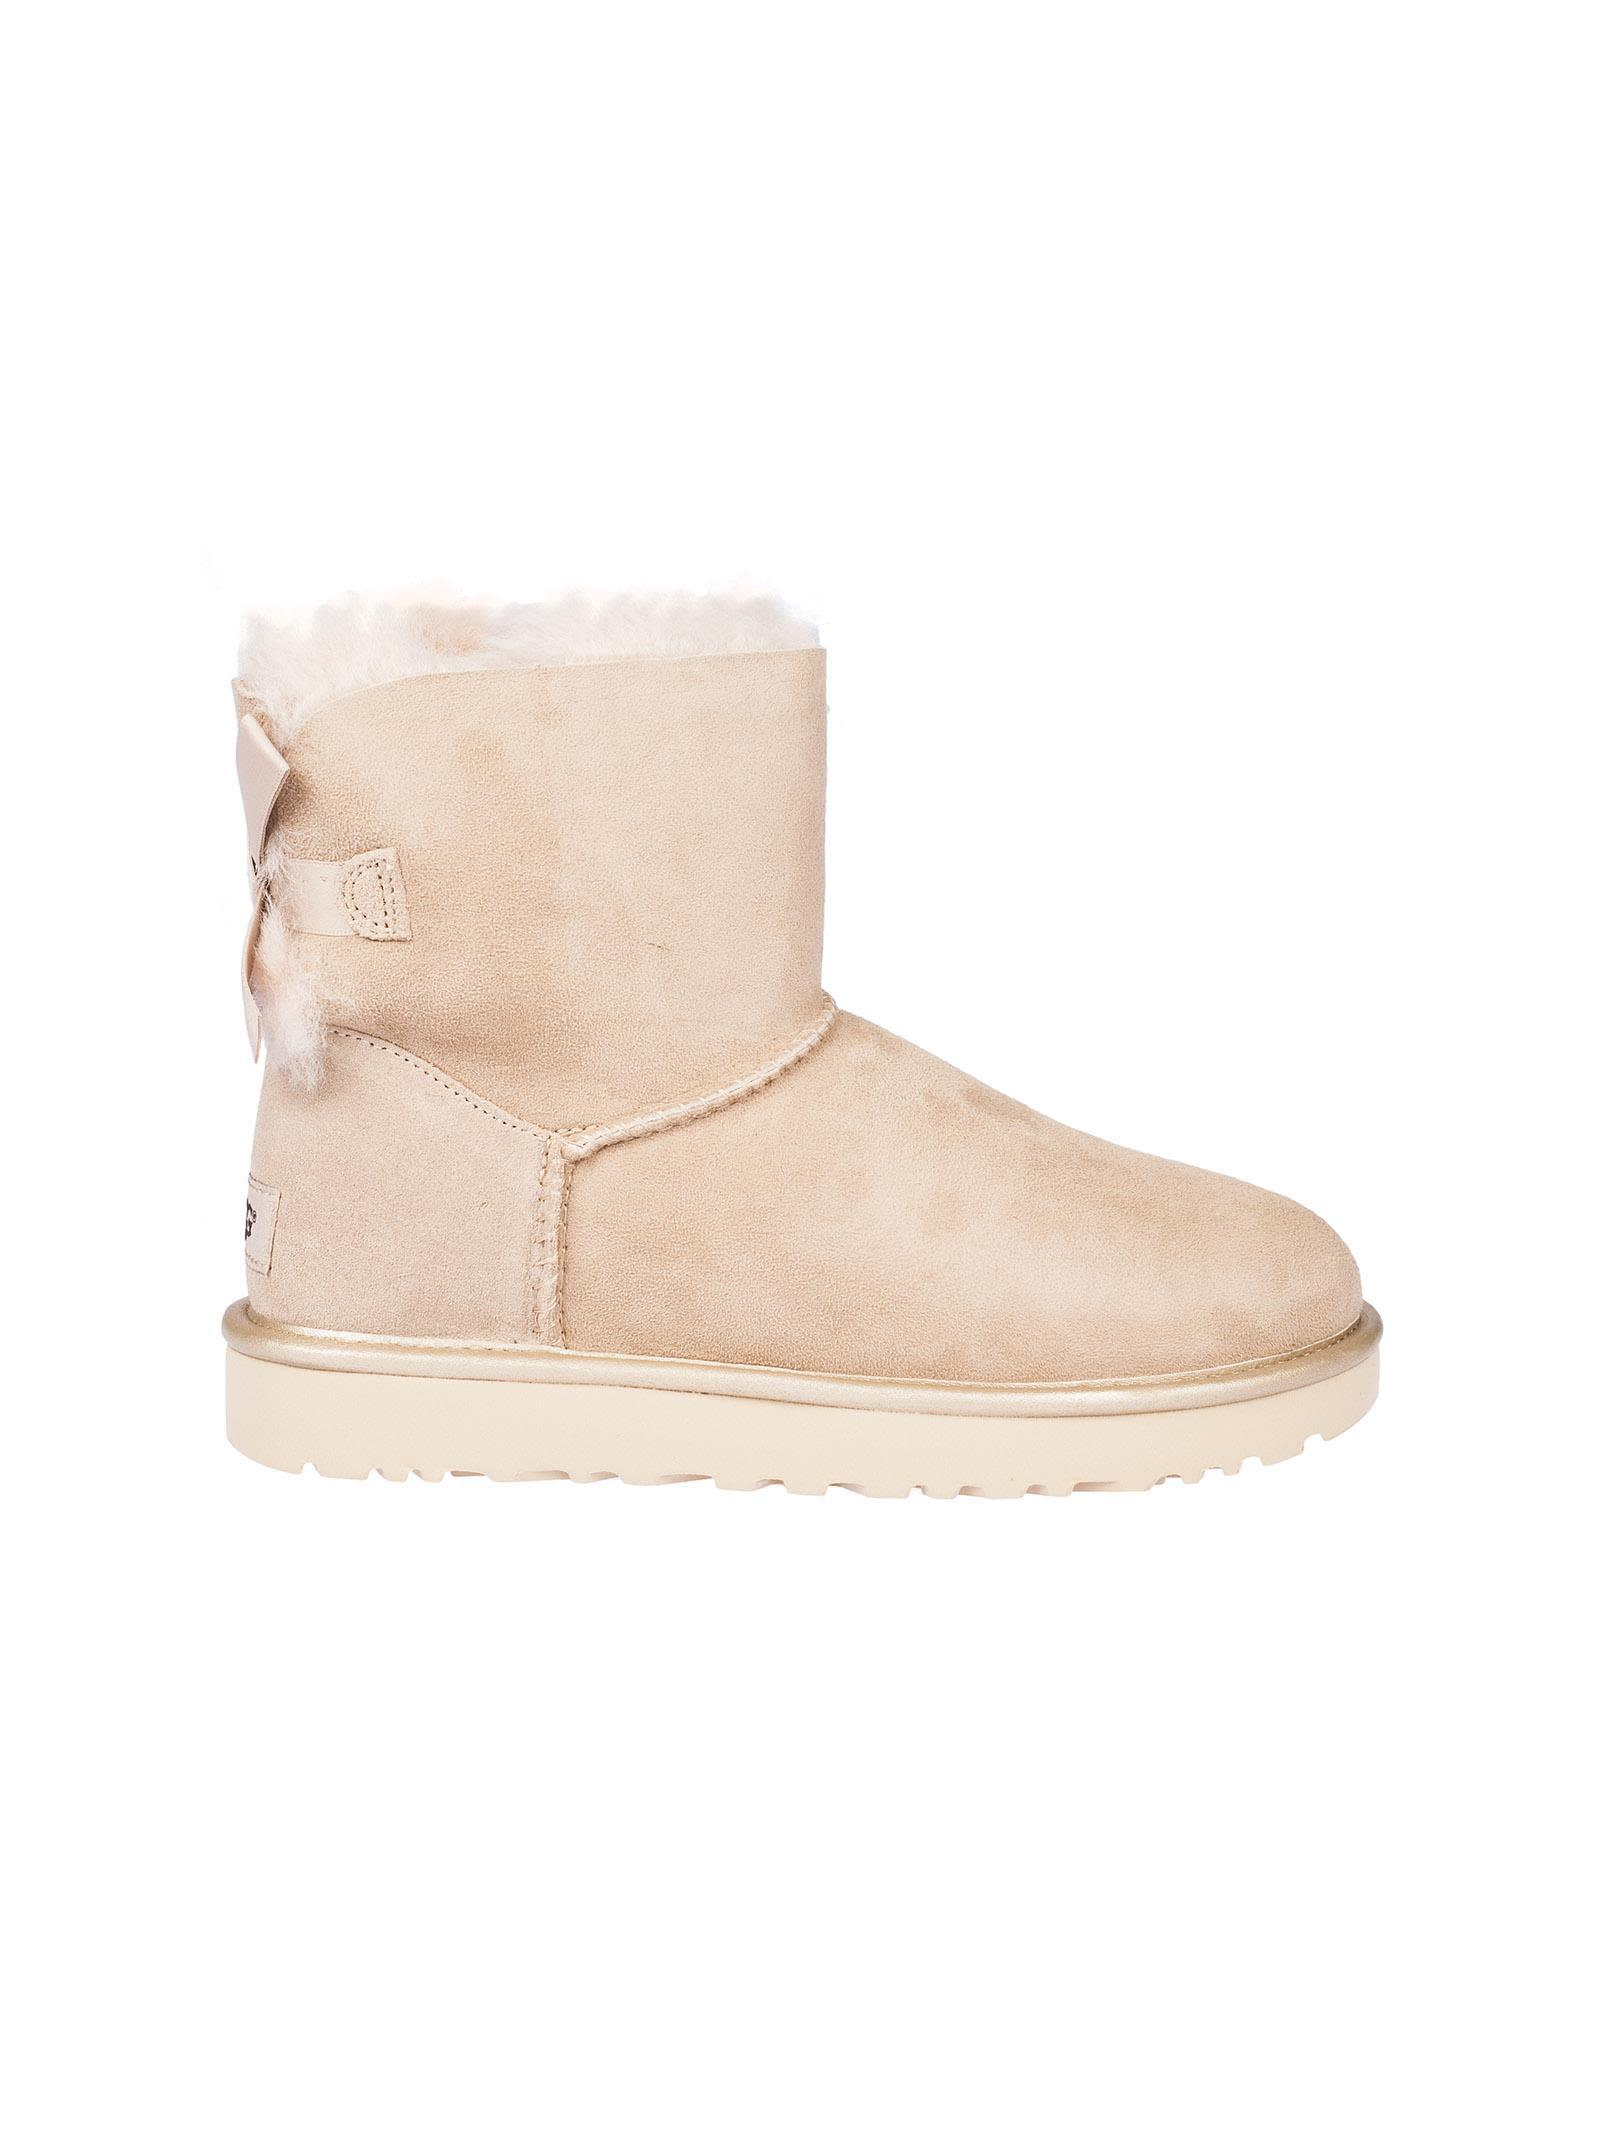 Ugg Mini Bailey Bow Boots In Beige